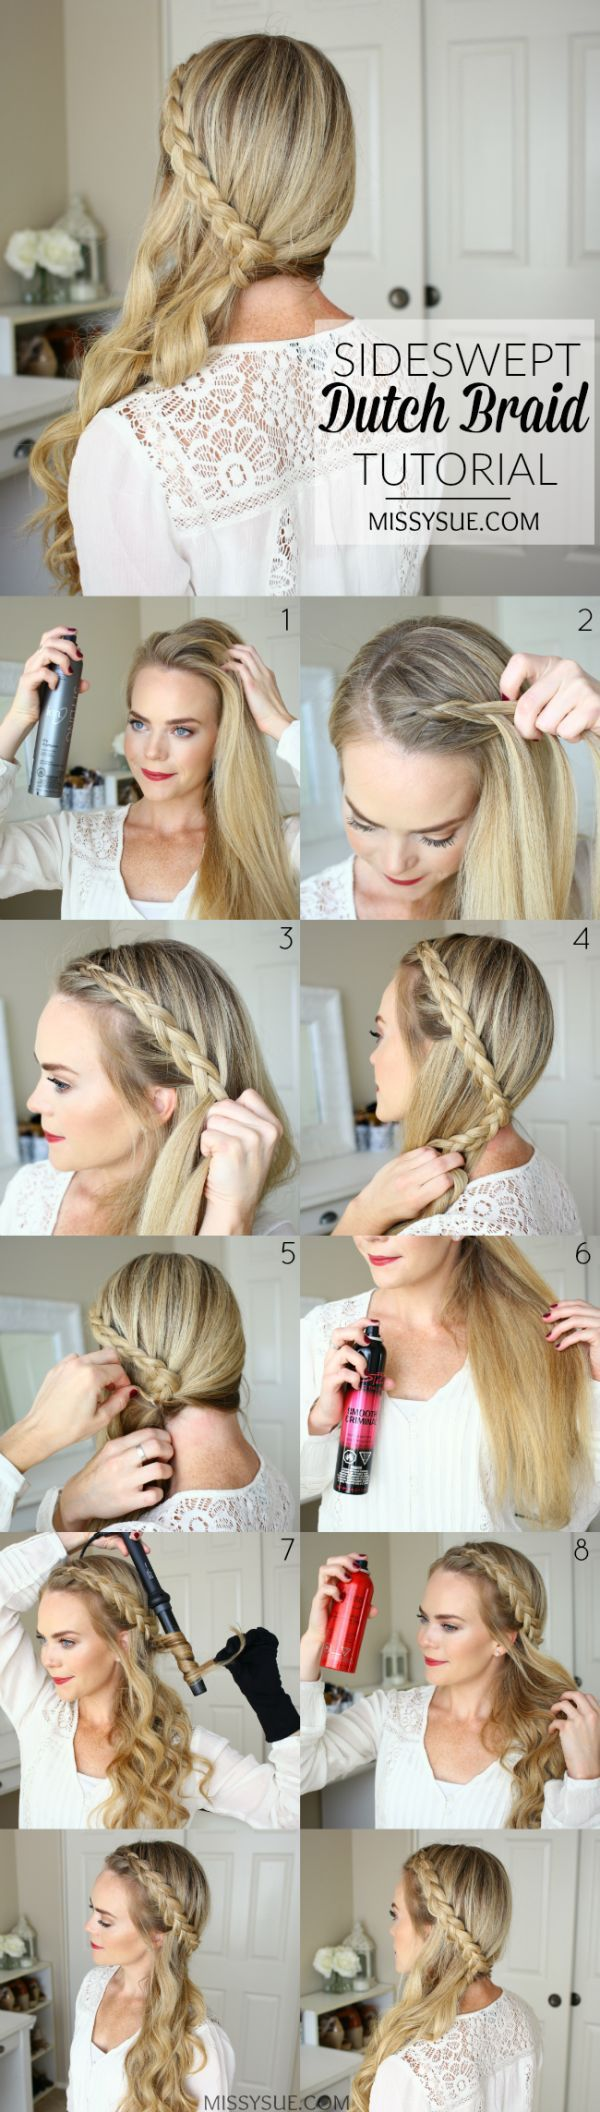 Tendance Coiffure Sideswept Dutch Braid Tutorial